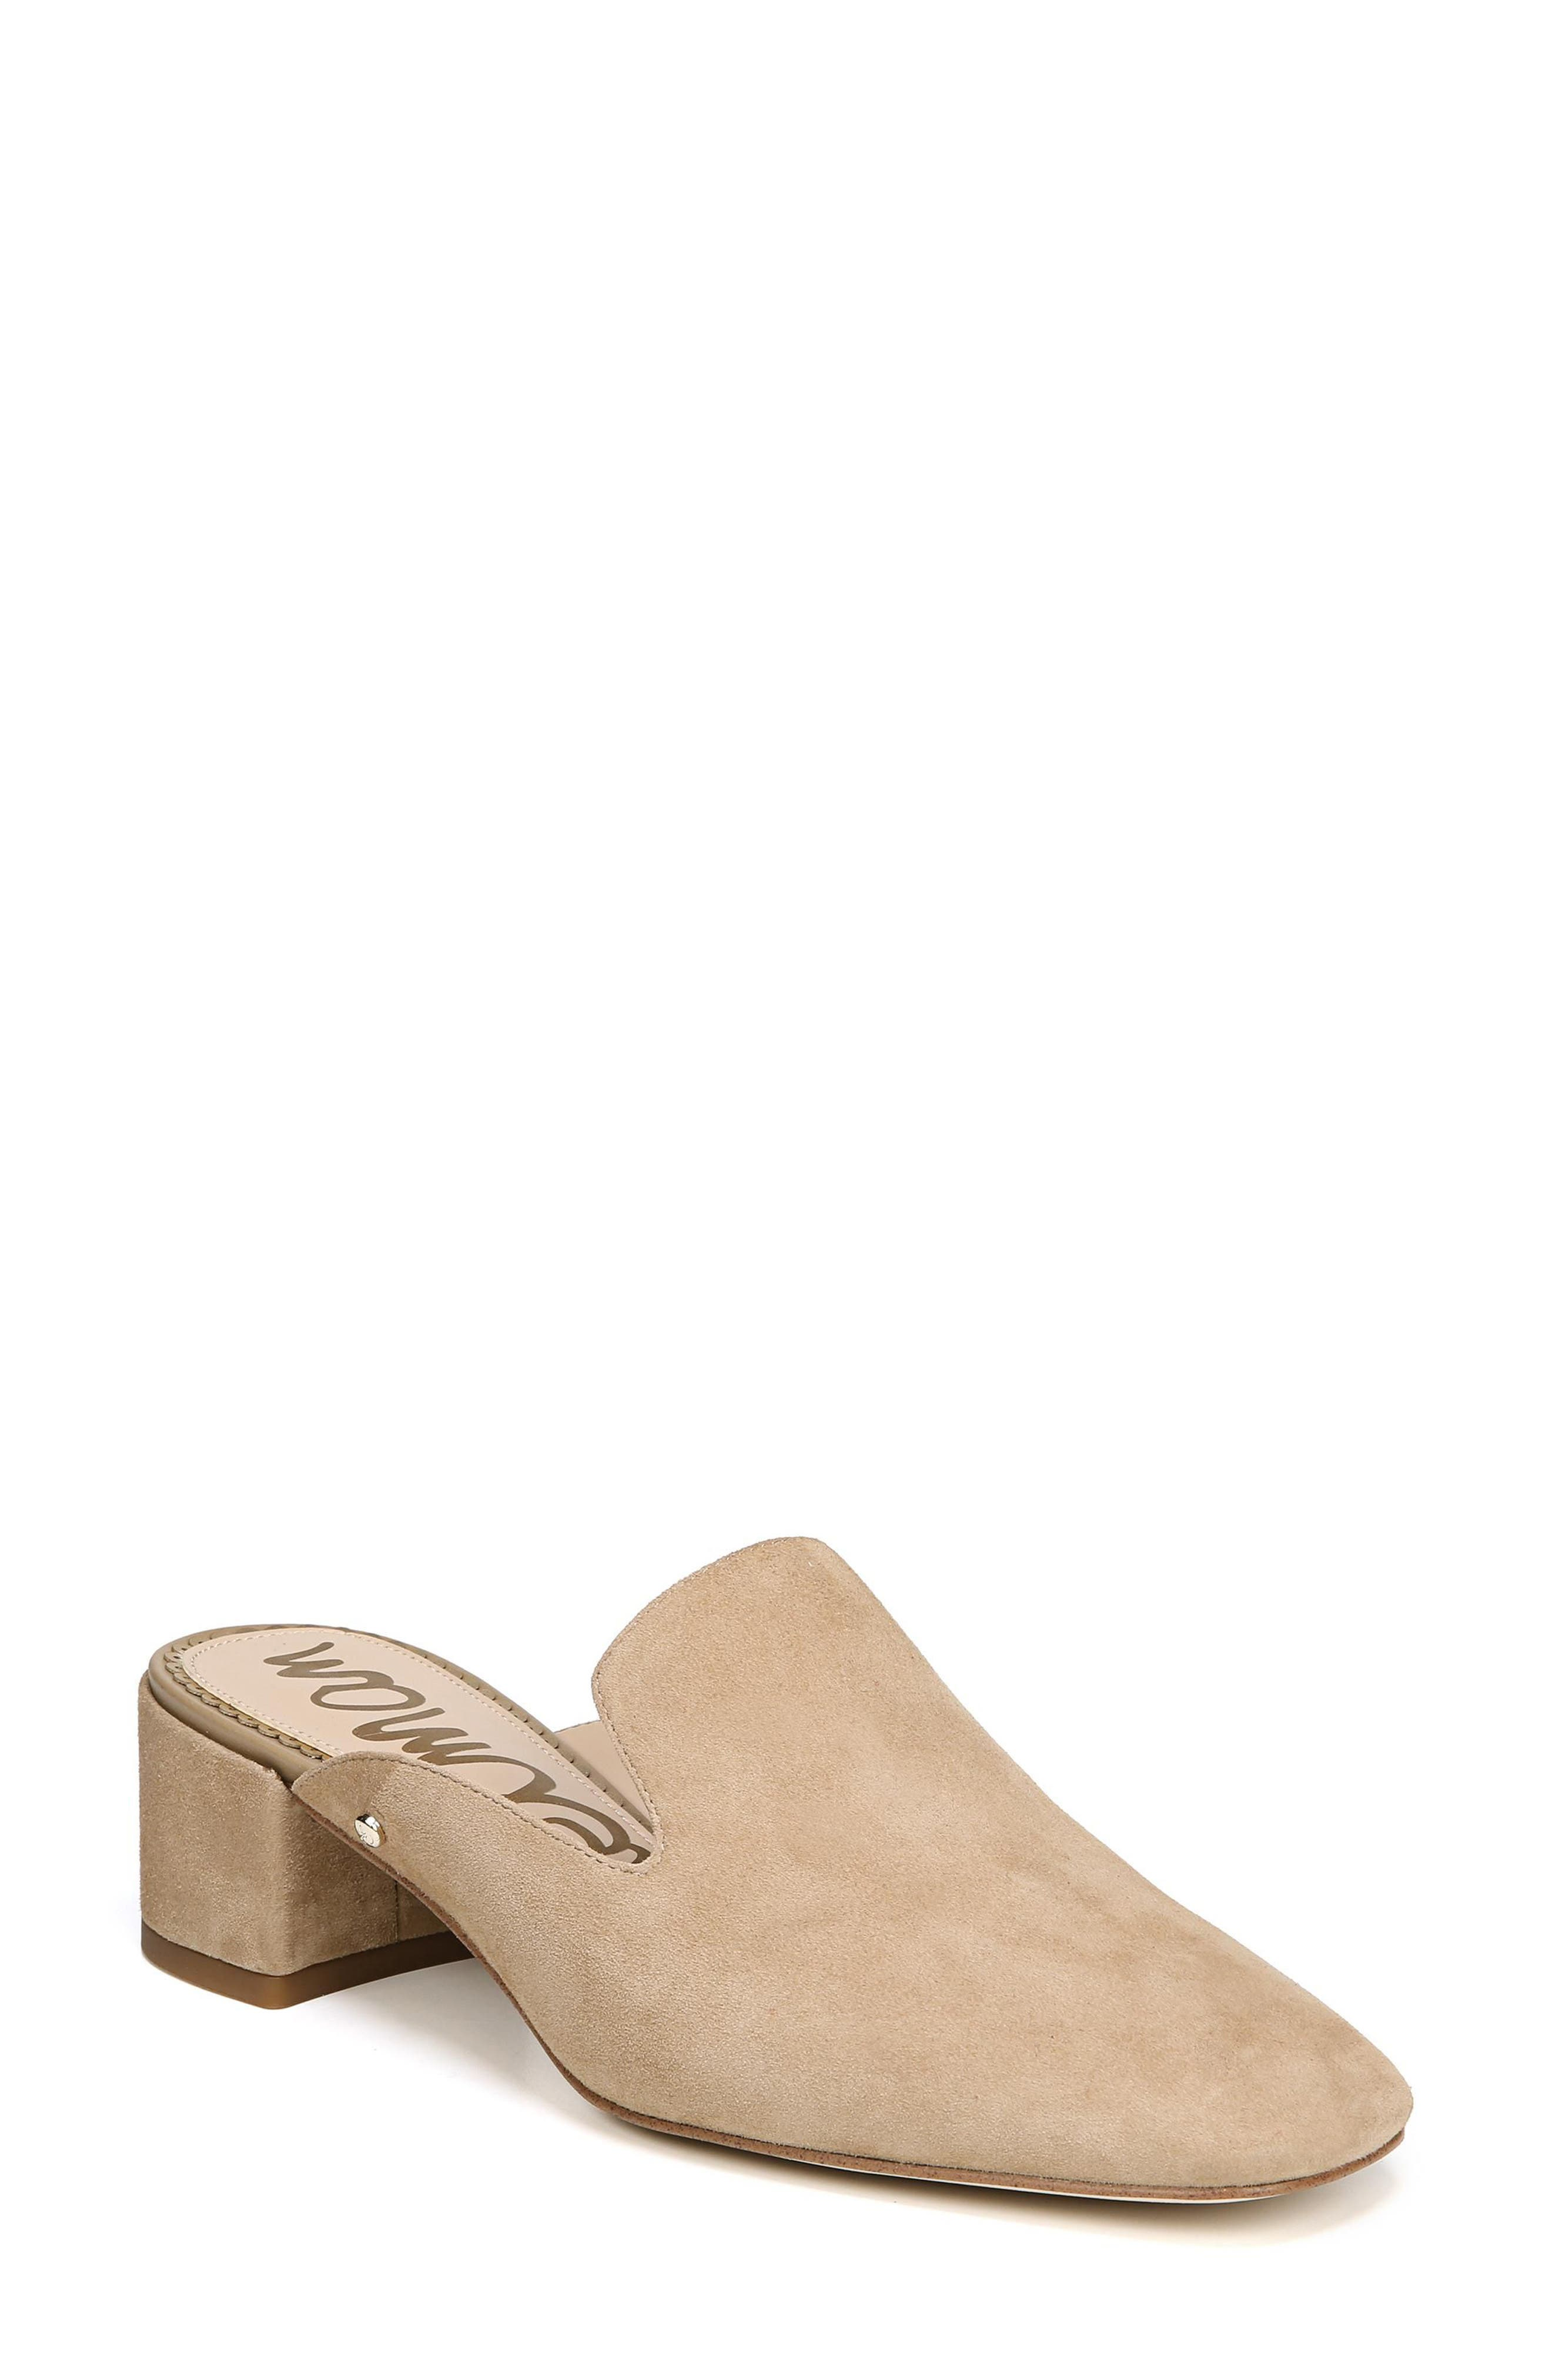 Adair Loafer Mule,                             Main thumbnail 1, color,                             OATMEAL LEATHER